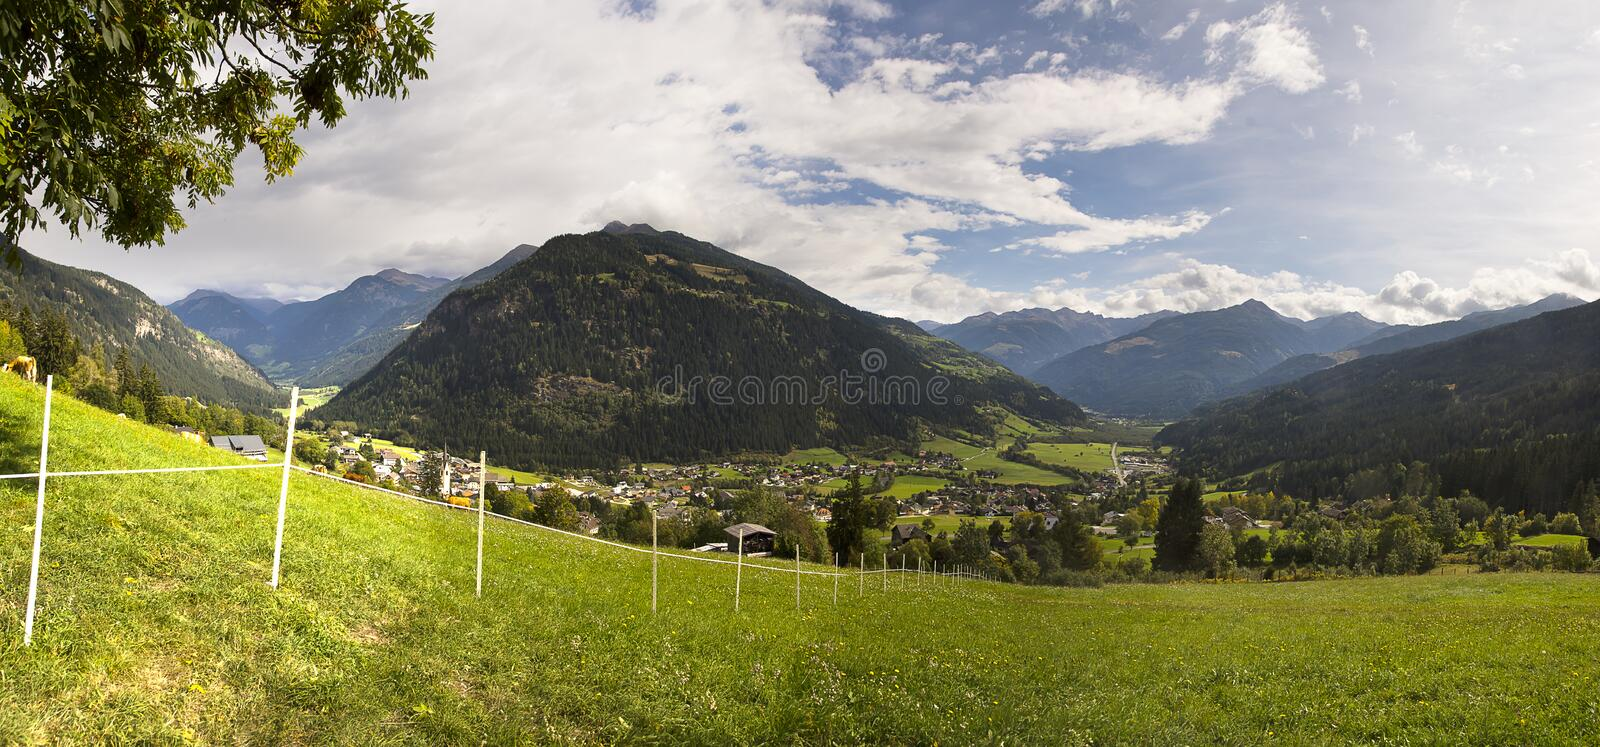 Landscape of Austrian Alps royalty free stock photography